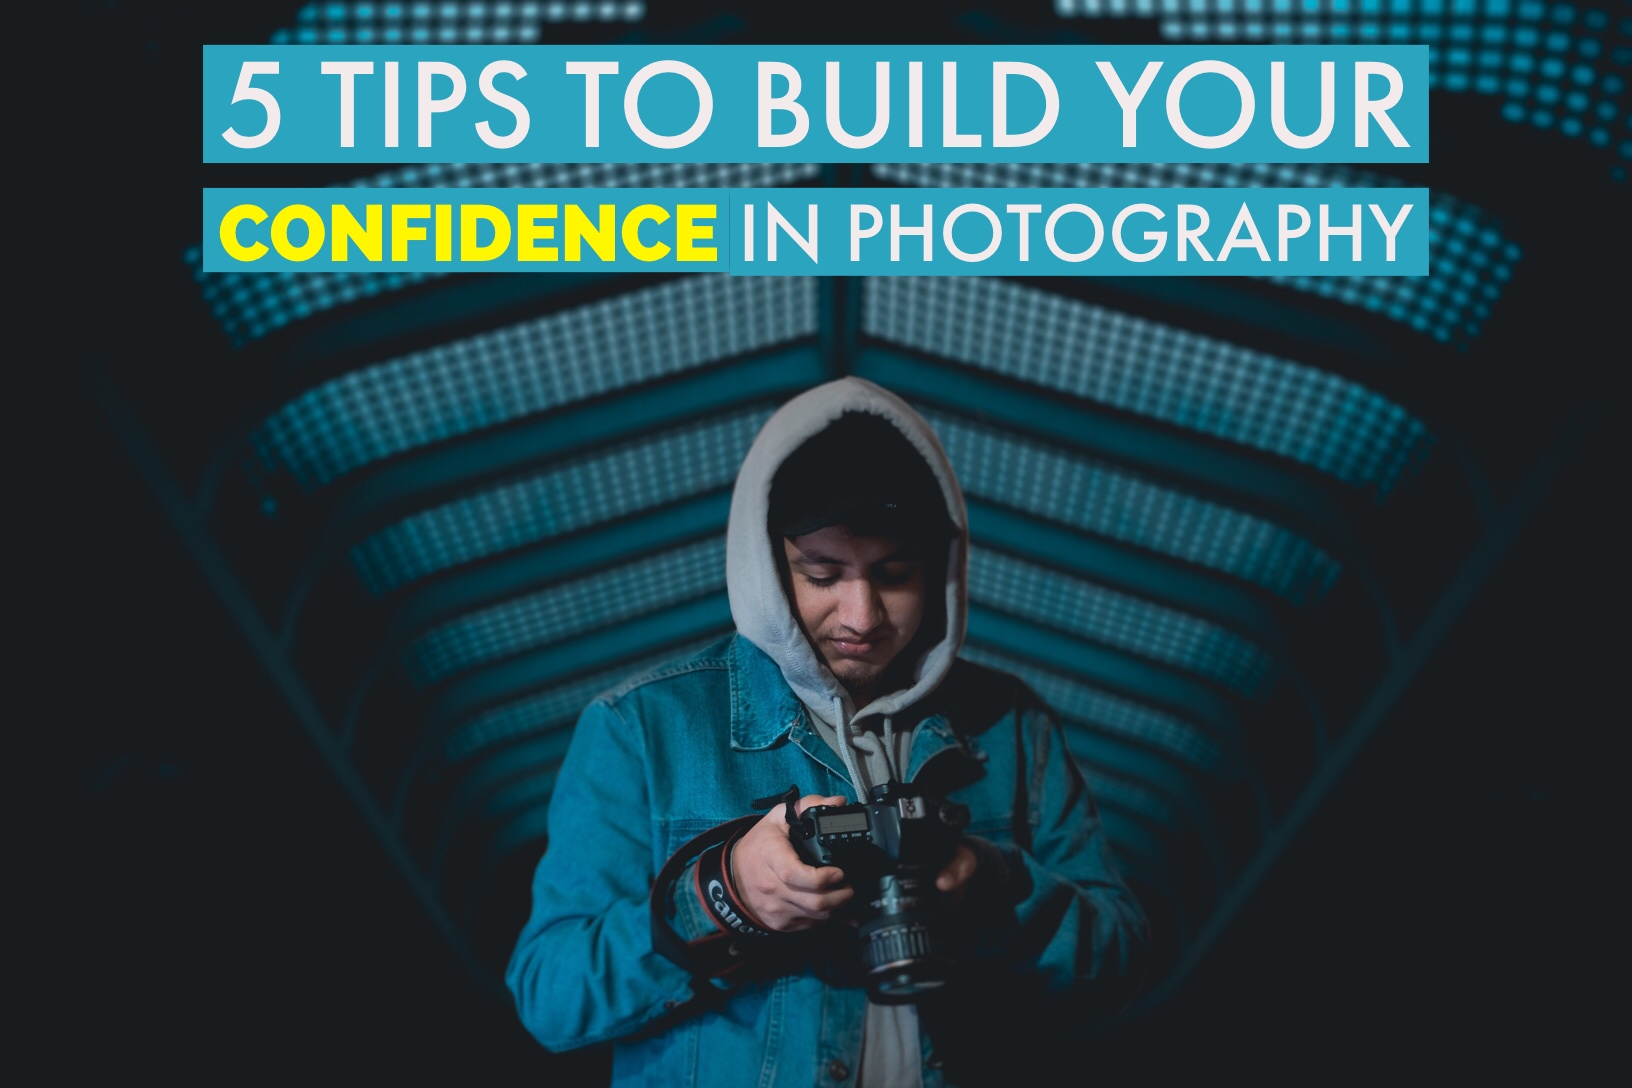 5 Tips to Help Build Your Confidence in Photography